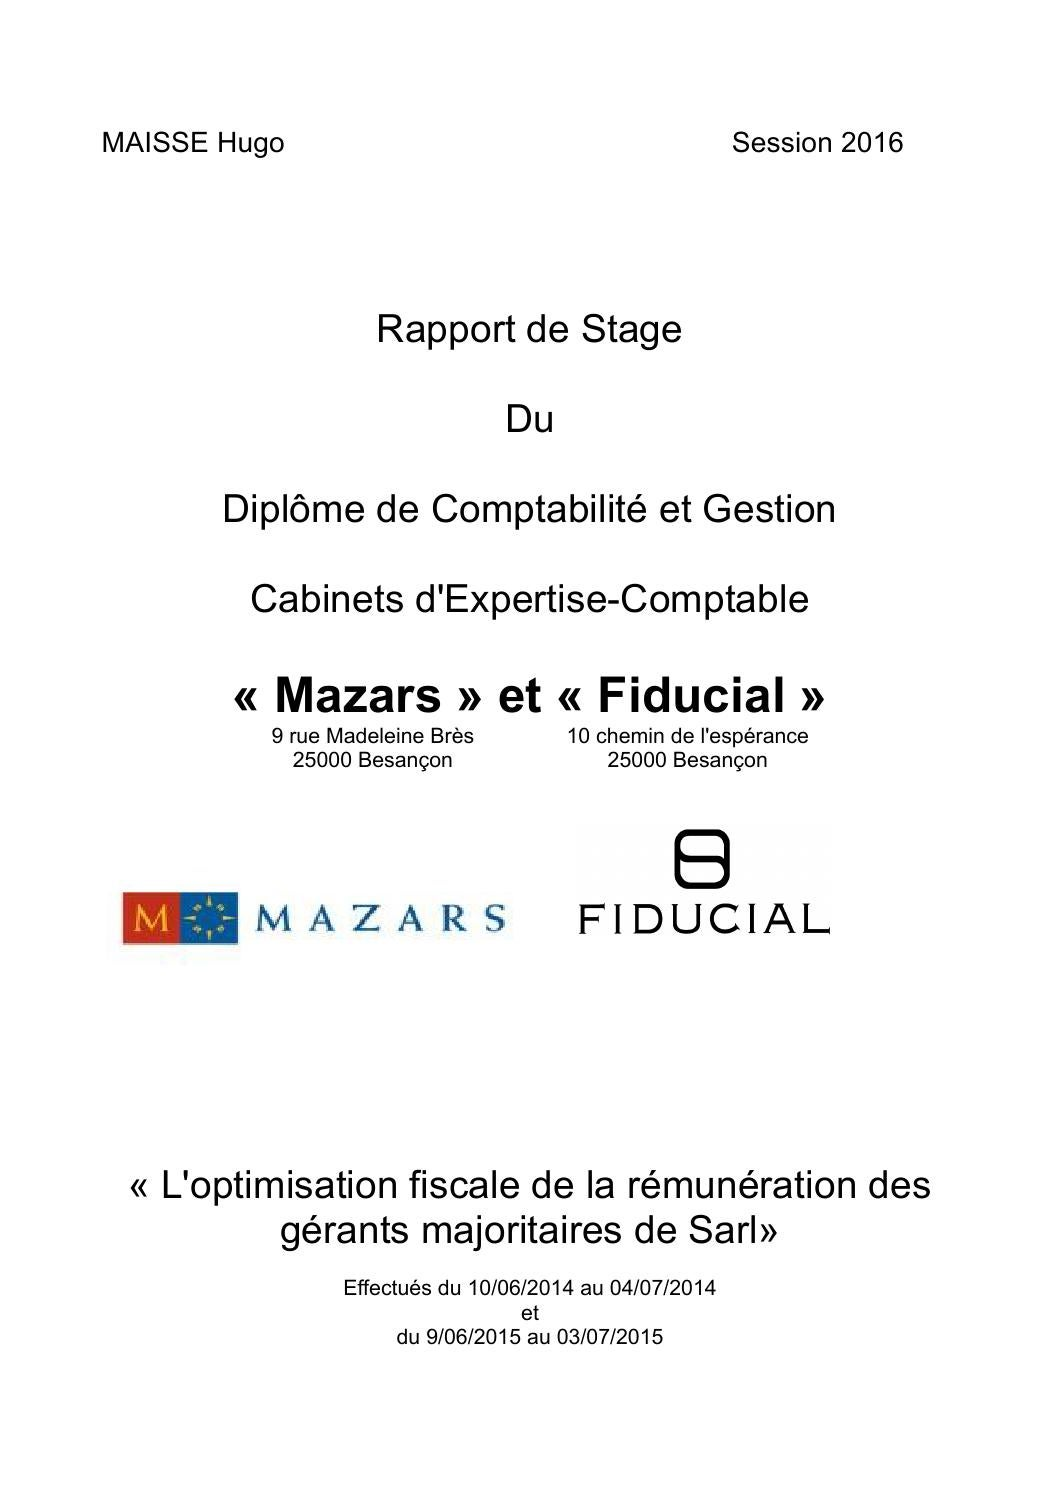 Rapport de stage dcg 3 immac by hugomaisse issuu - Rapport de stage cabinet comptable ...